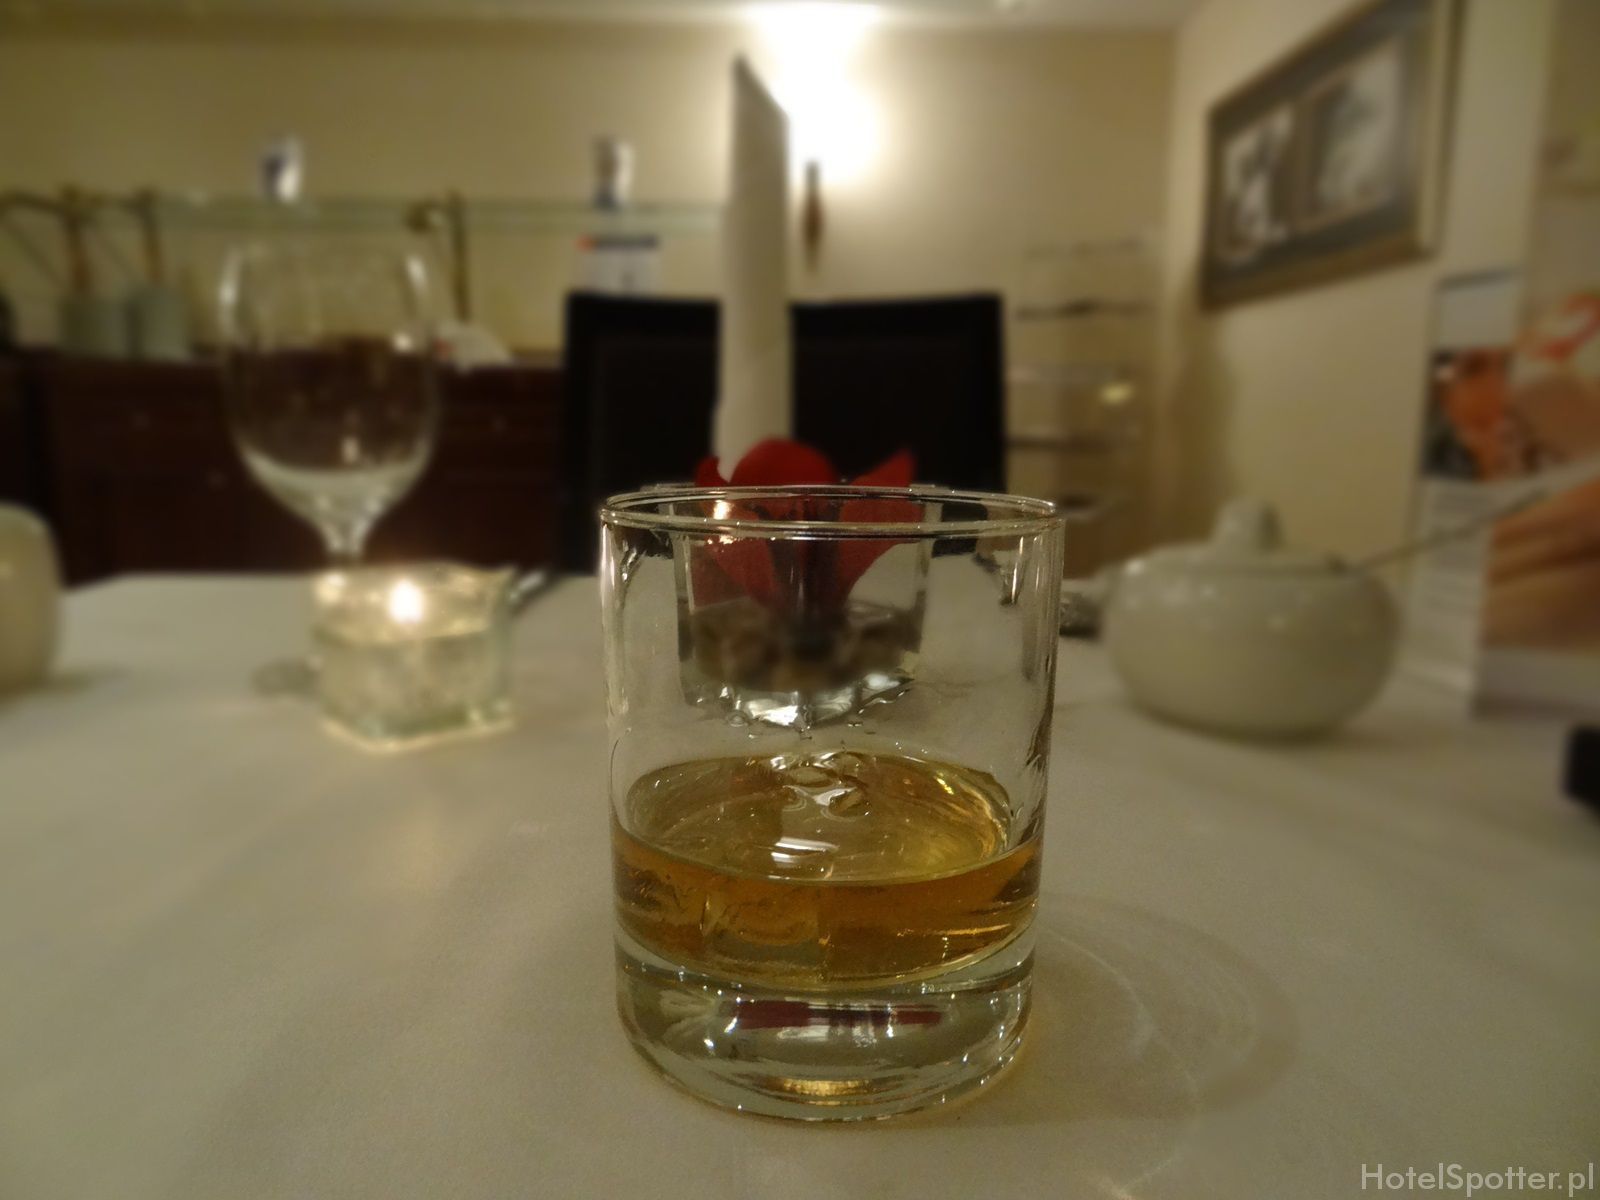 Maritim Hotel Berlin - club lounge Jim Beam bourbon